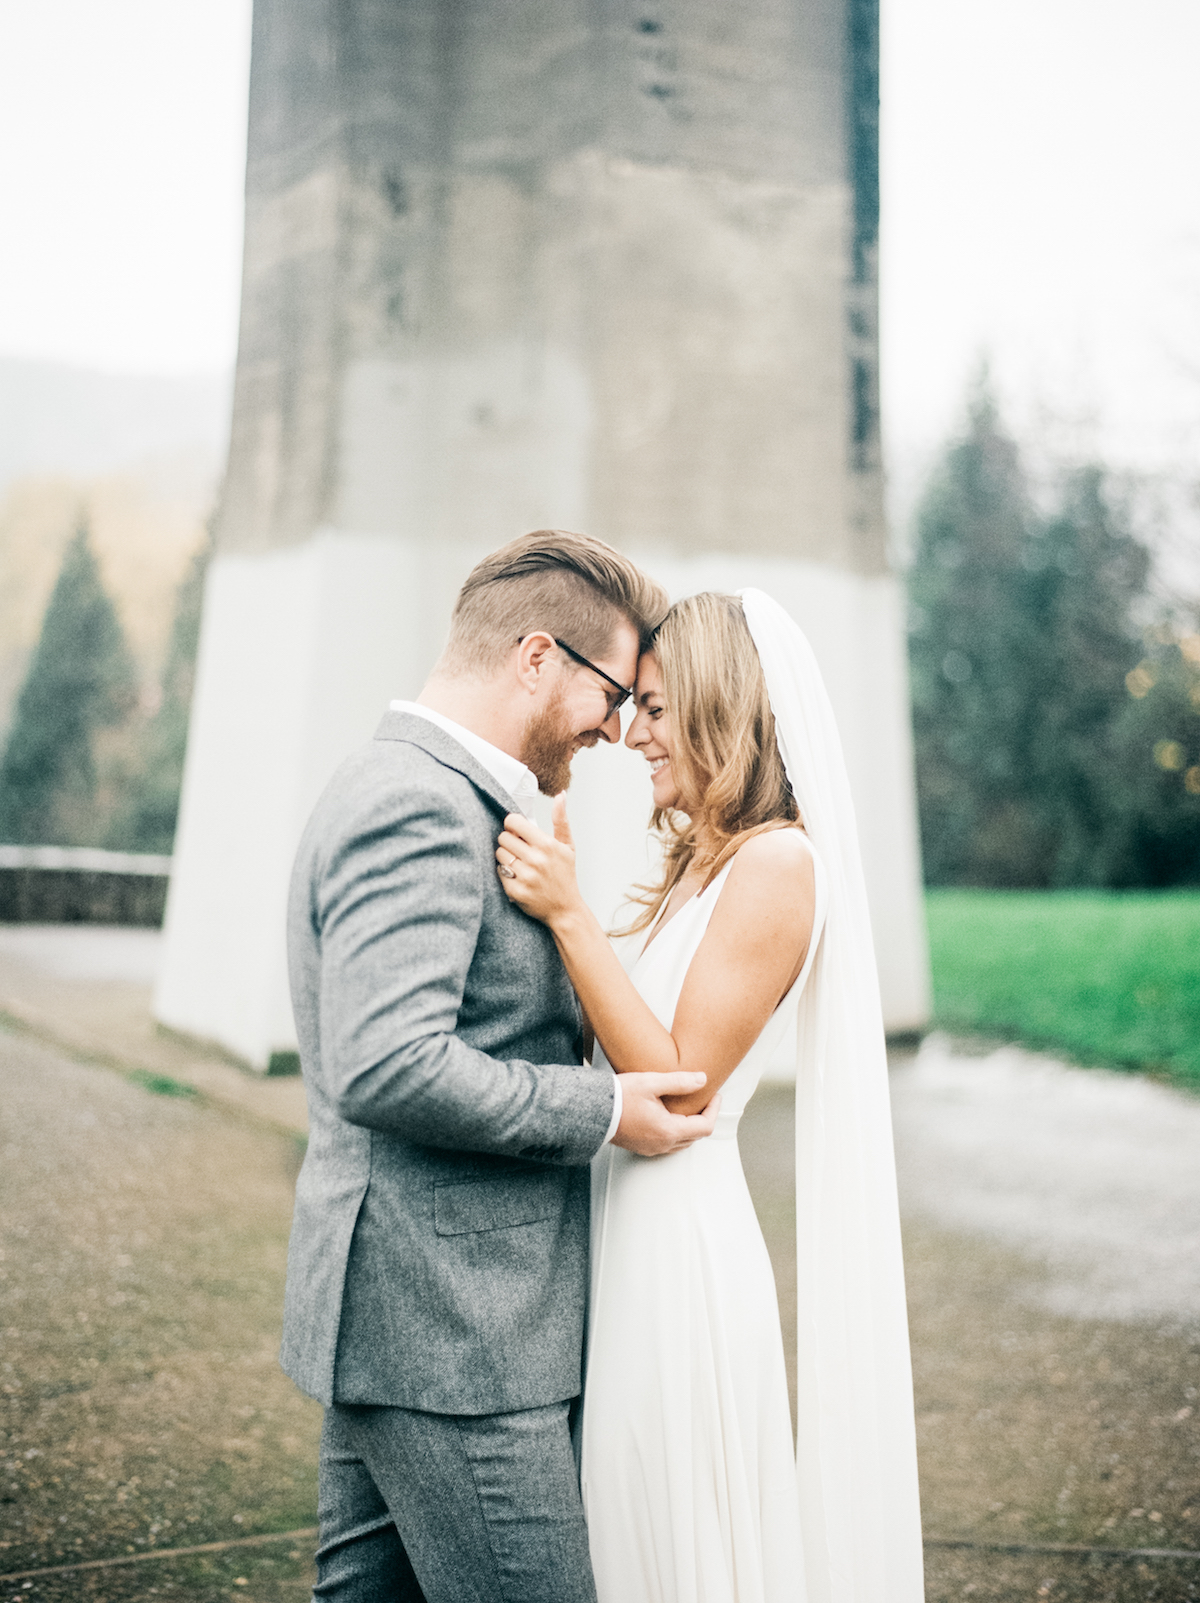 Ira and Lucy Wedding Planner, Kendra Elise Photography